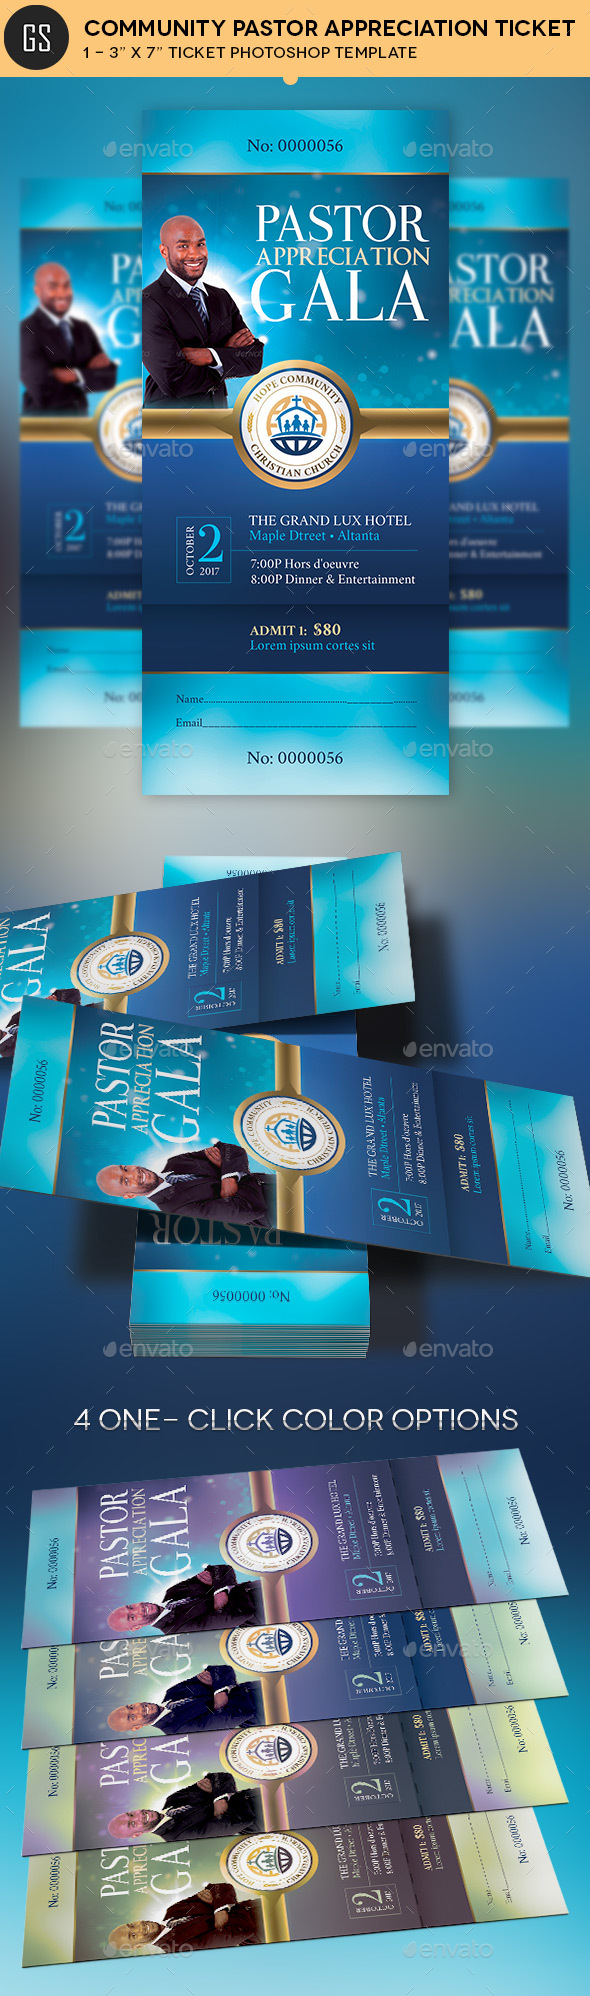 Community Pastor Appreciation Gala Ticket Template - Miscellaneous Print Templates